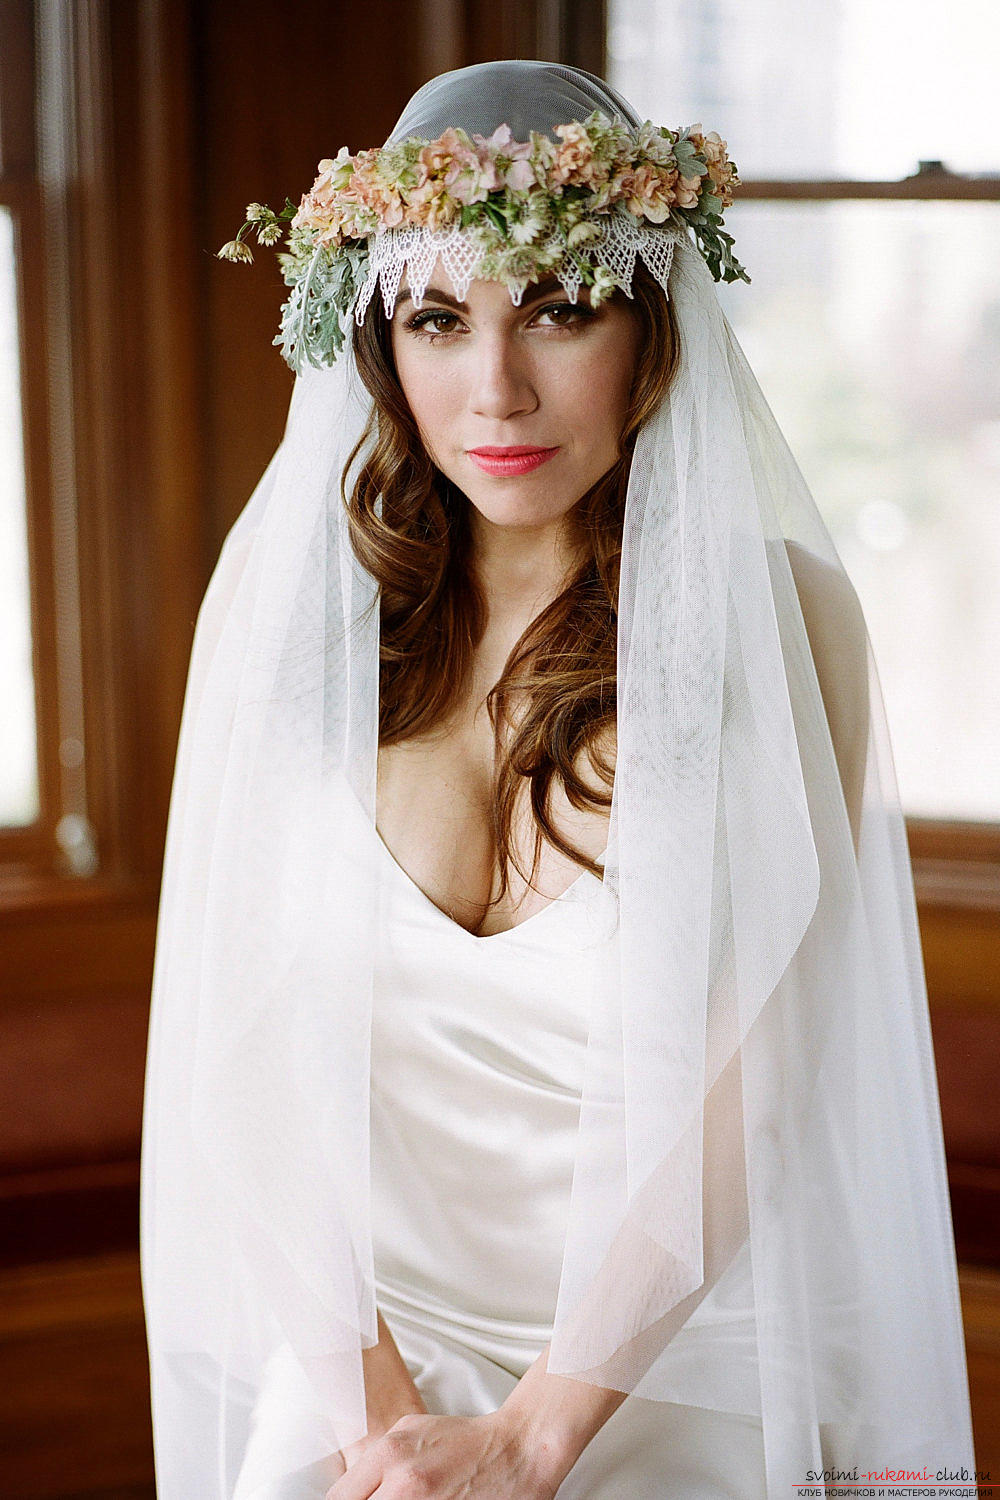 Hairstyles for the bride for the wedding with the veil. Photo №1